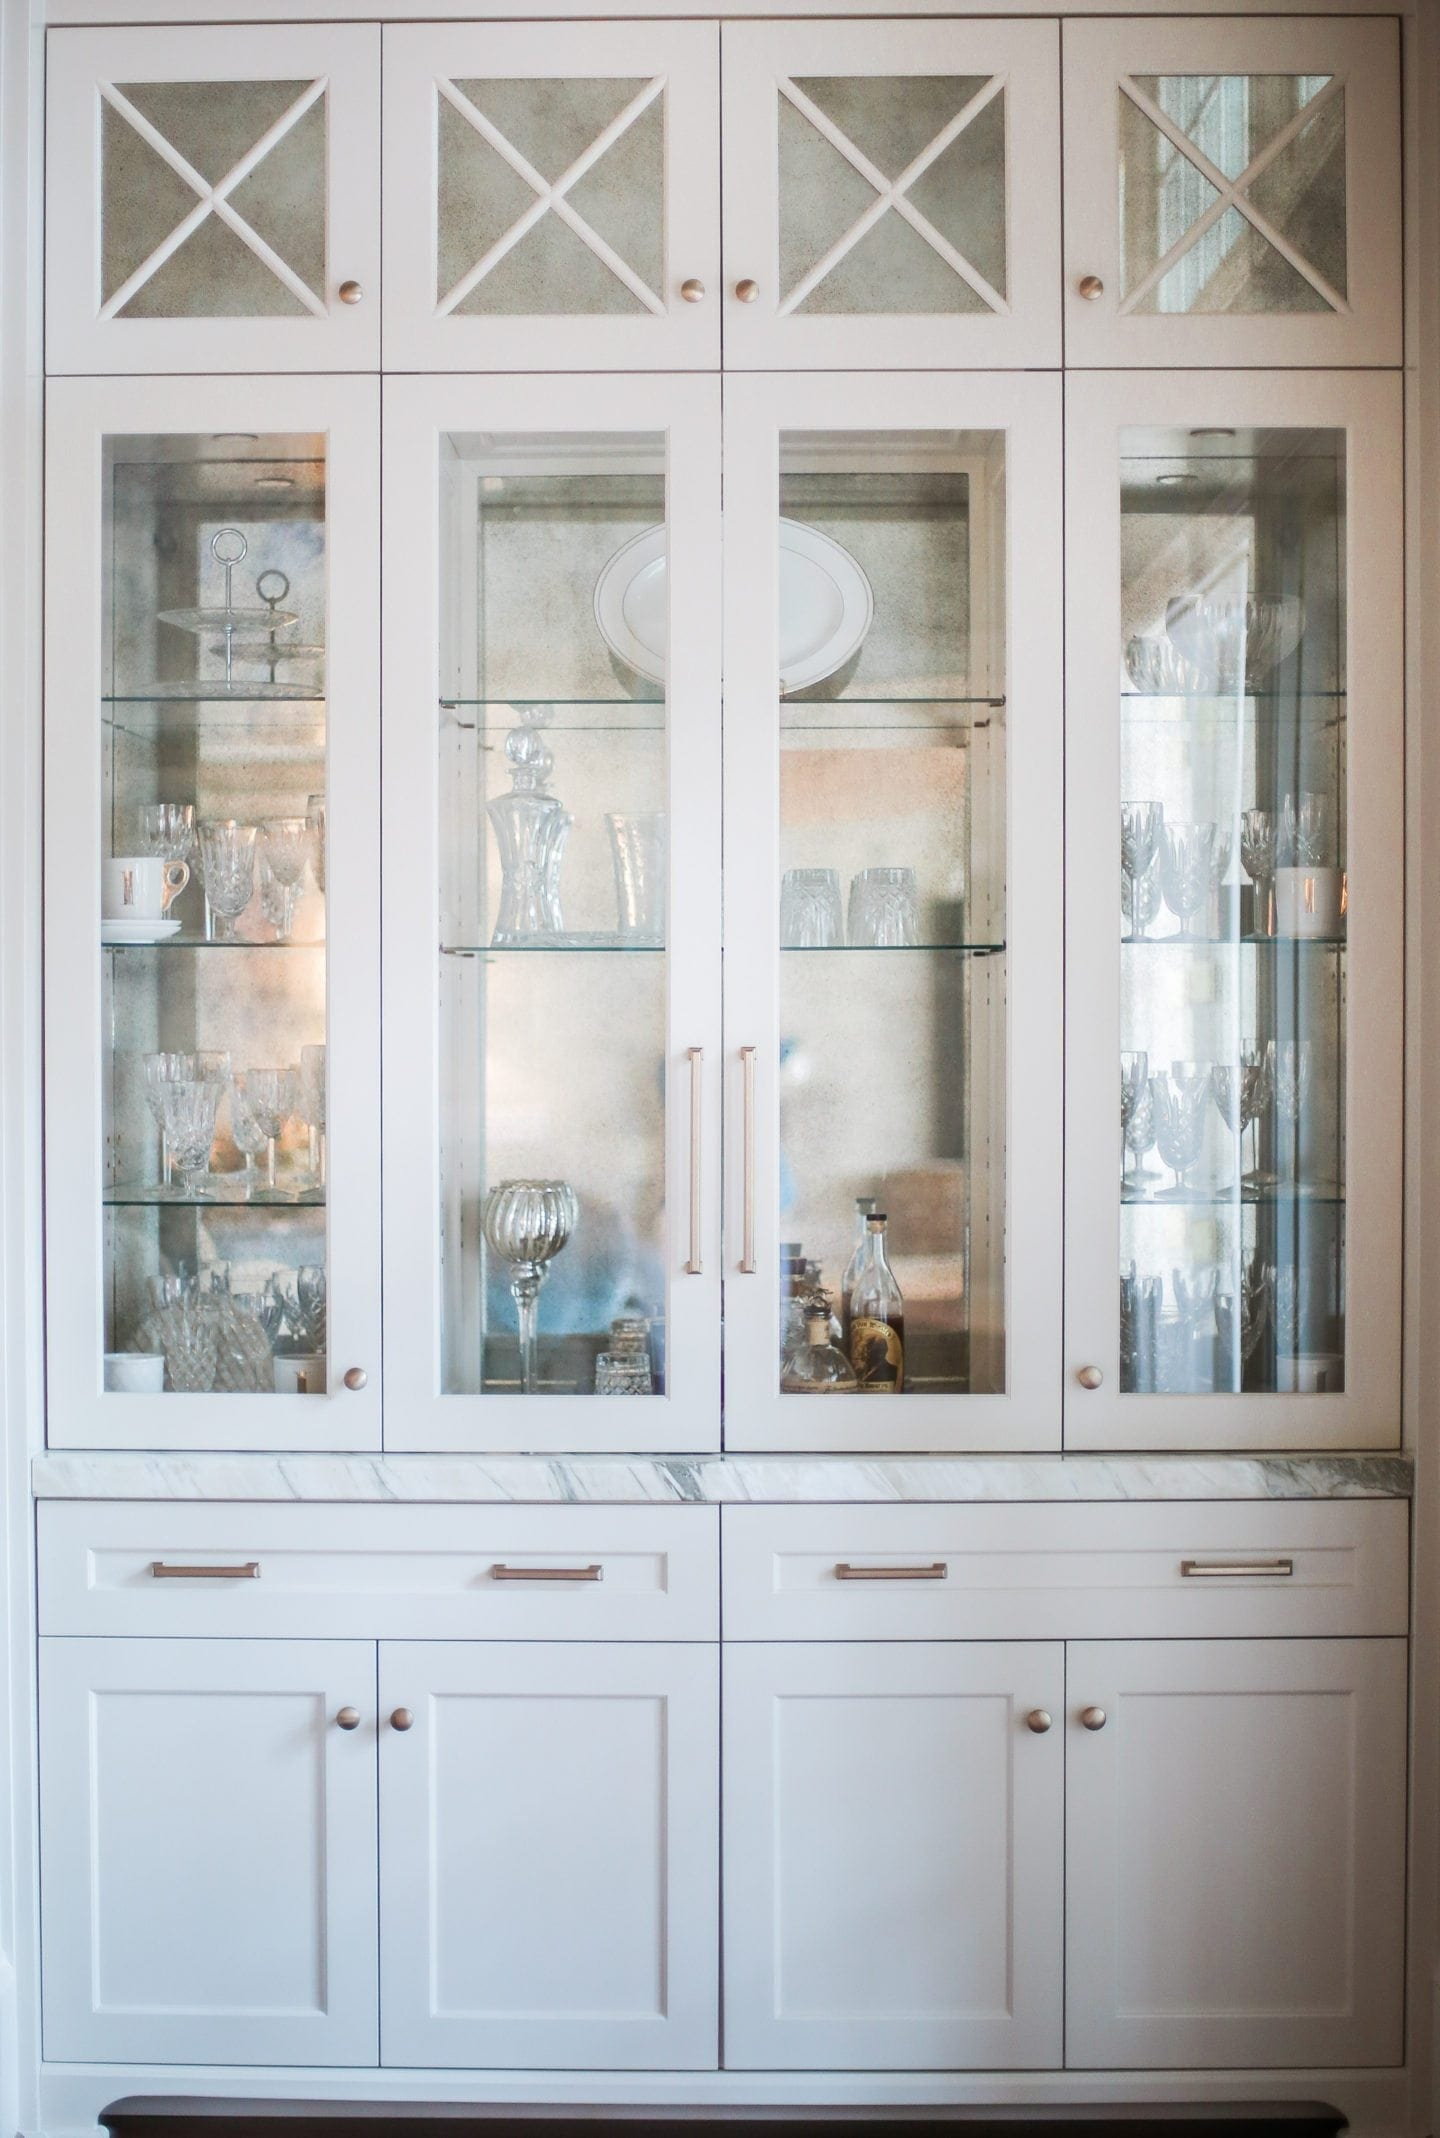 Formal Dining Room Storage And Cabinet Built In White With Gold Hardware